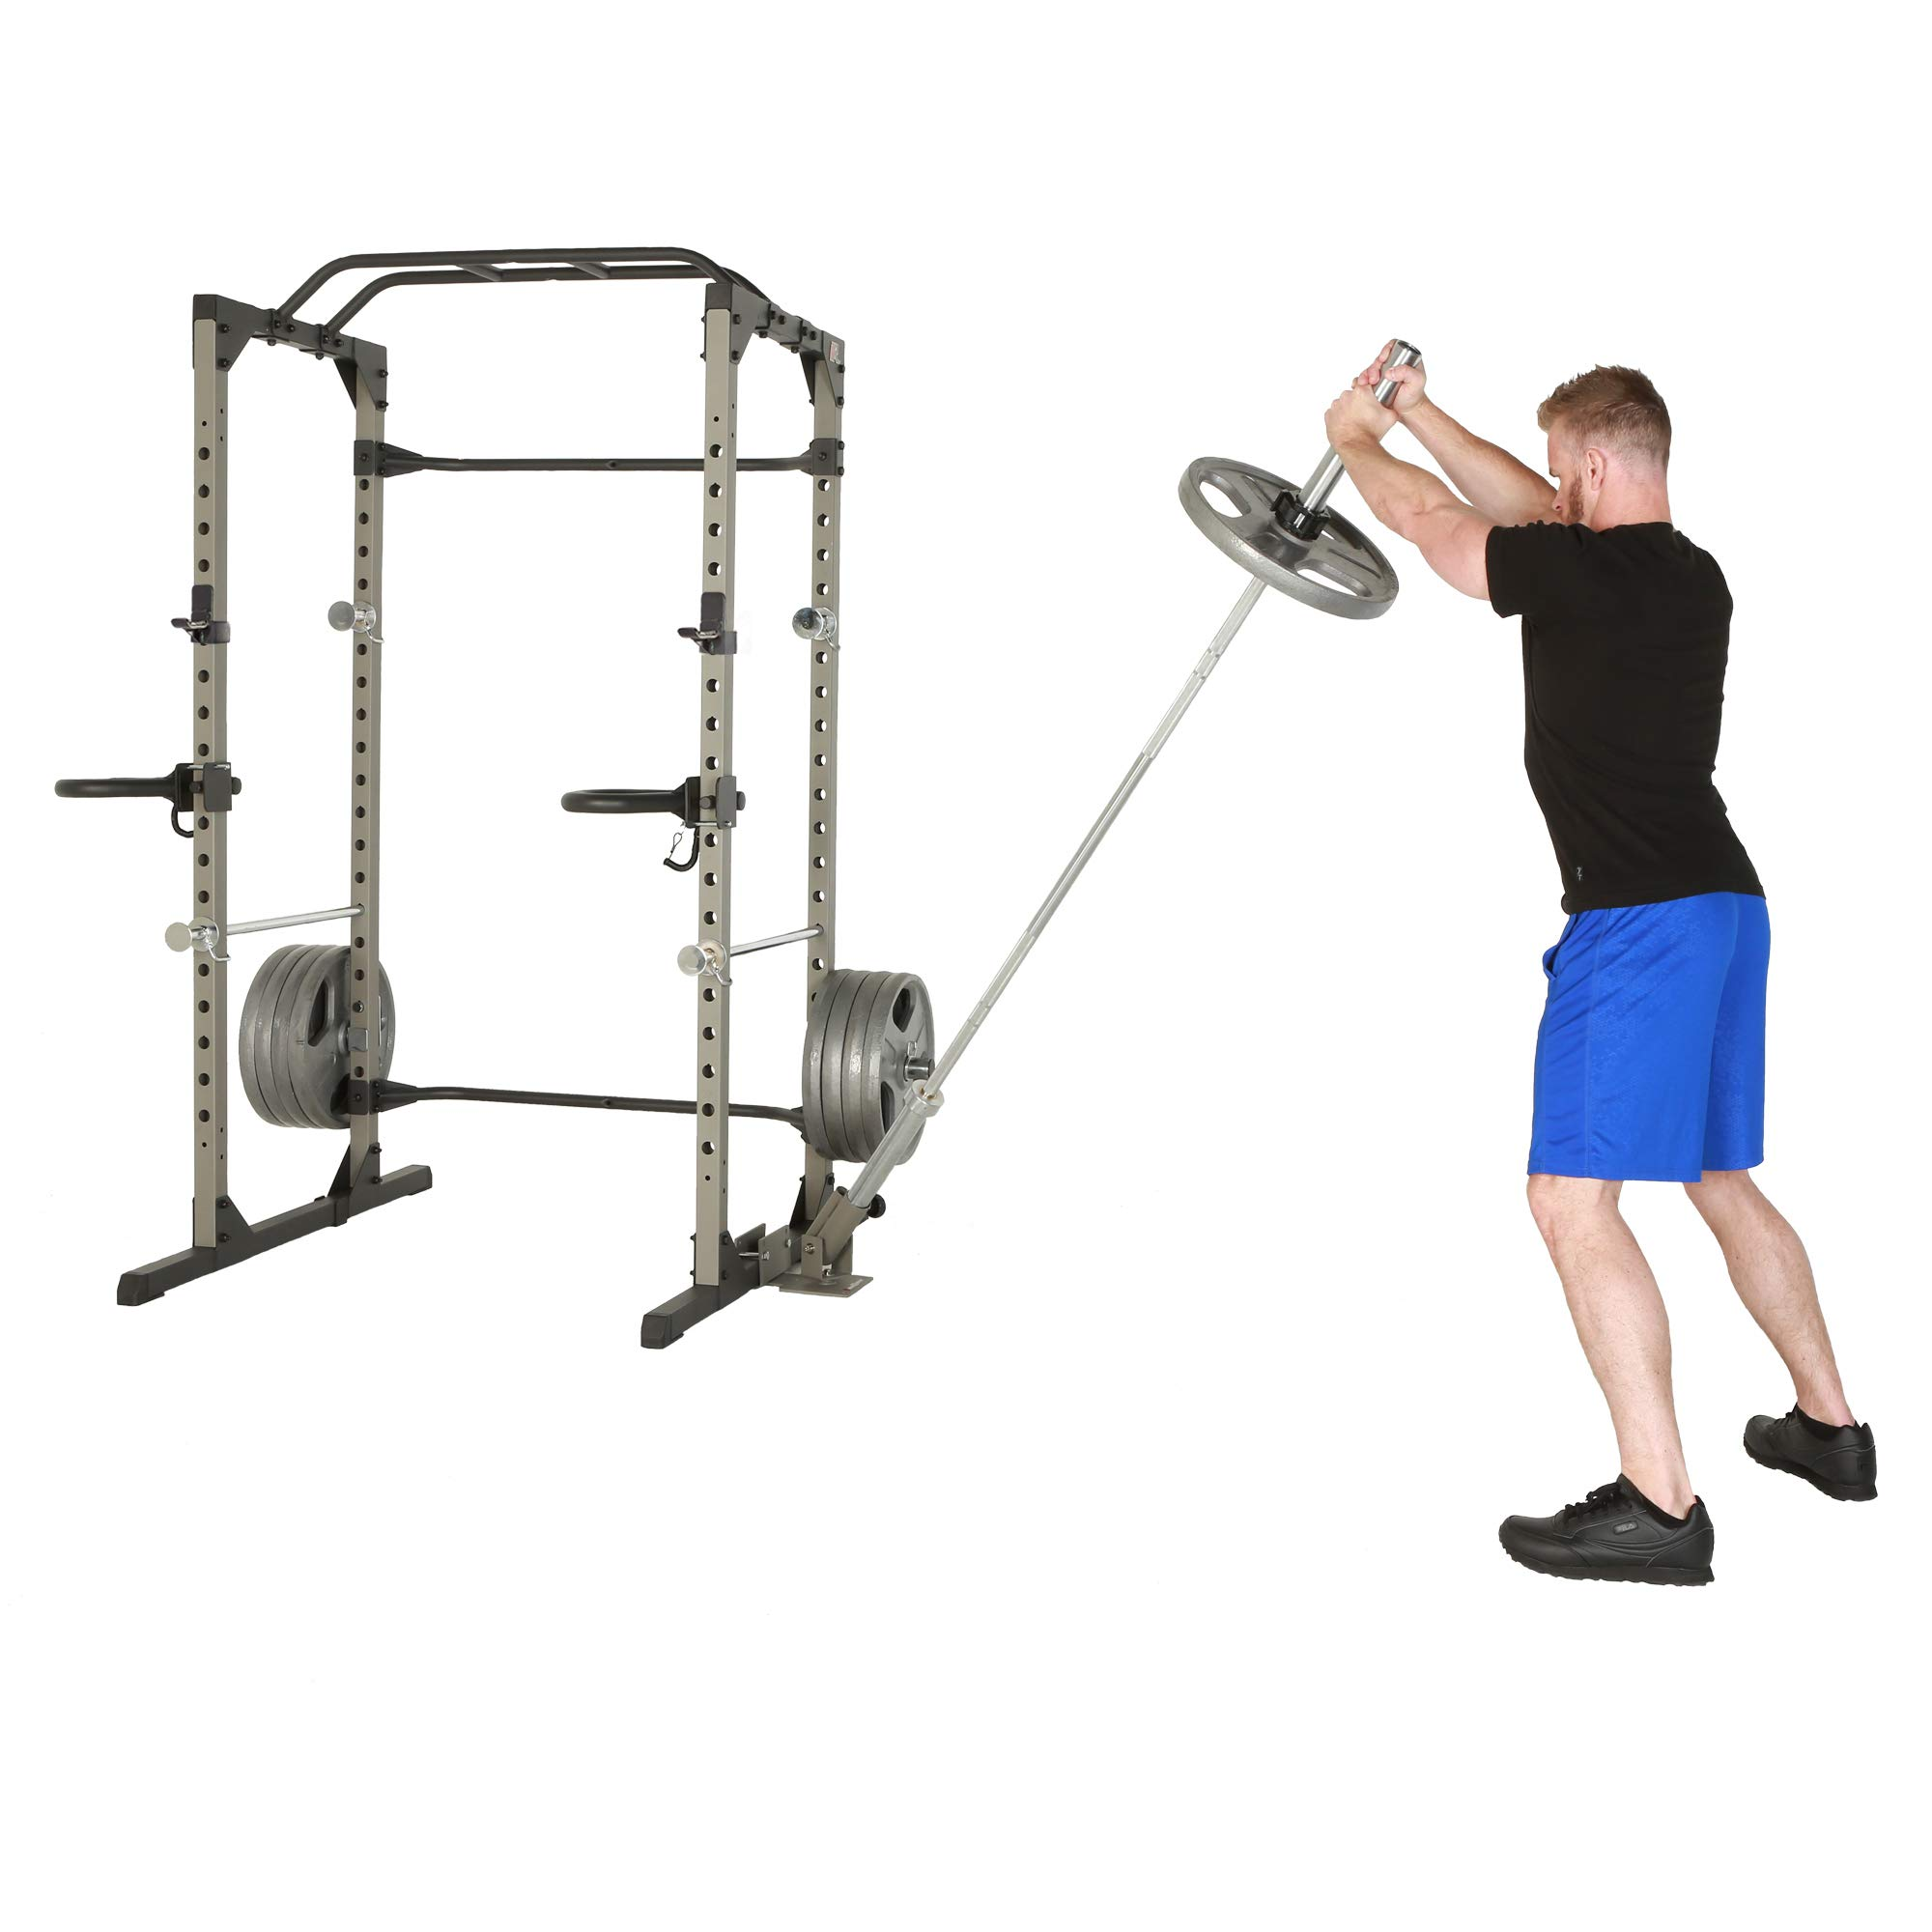 Fitness Reality 2819 Attachment Set for 2''x2'' Steel Tubing Power Cages by Fitness Reality (Image #14)